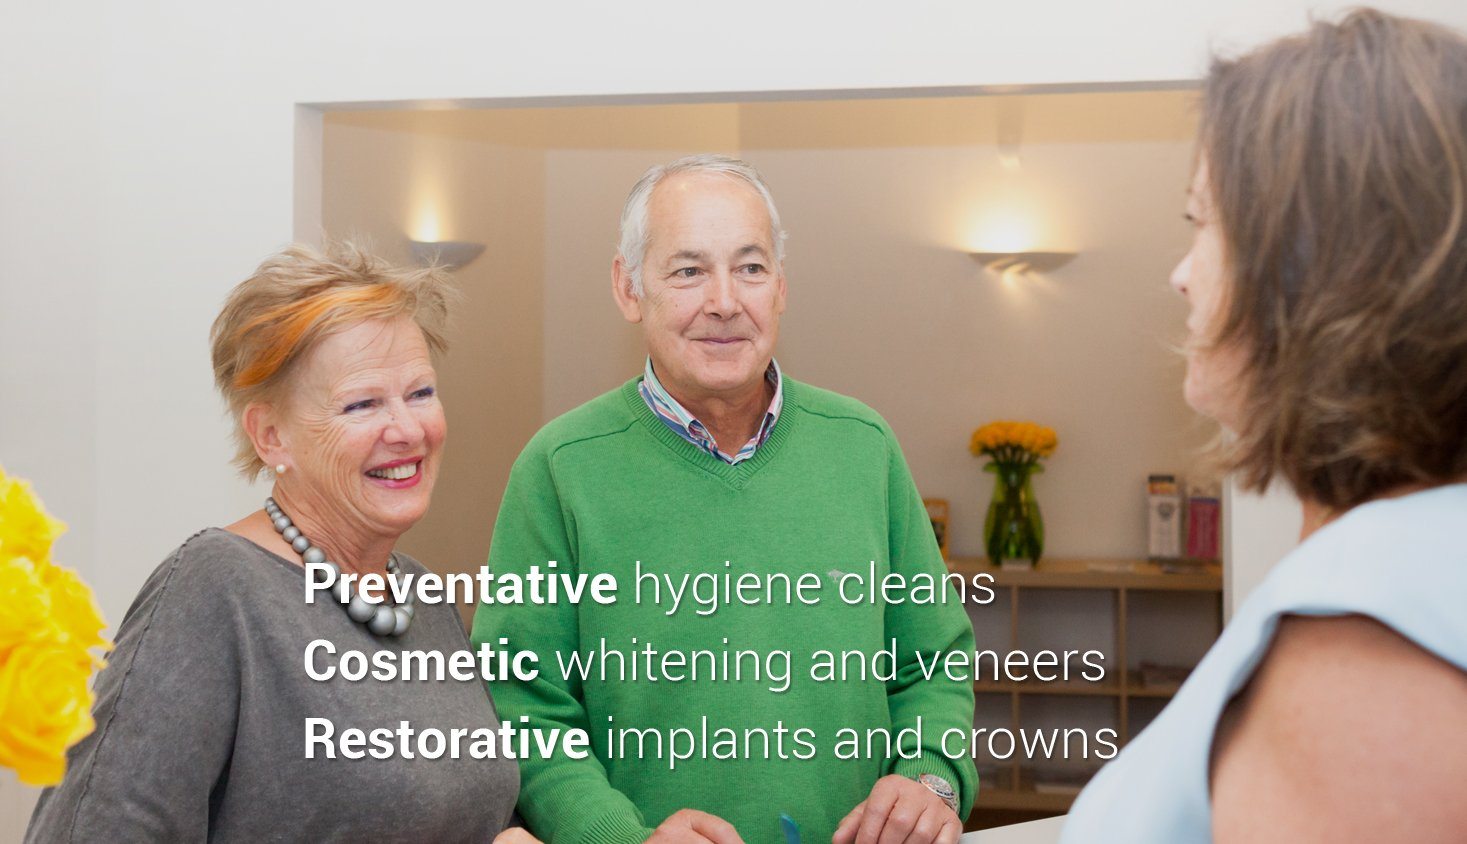 Preventative hygiene cleans Cosmetic whitening and veneers Restorative implants and crowns